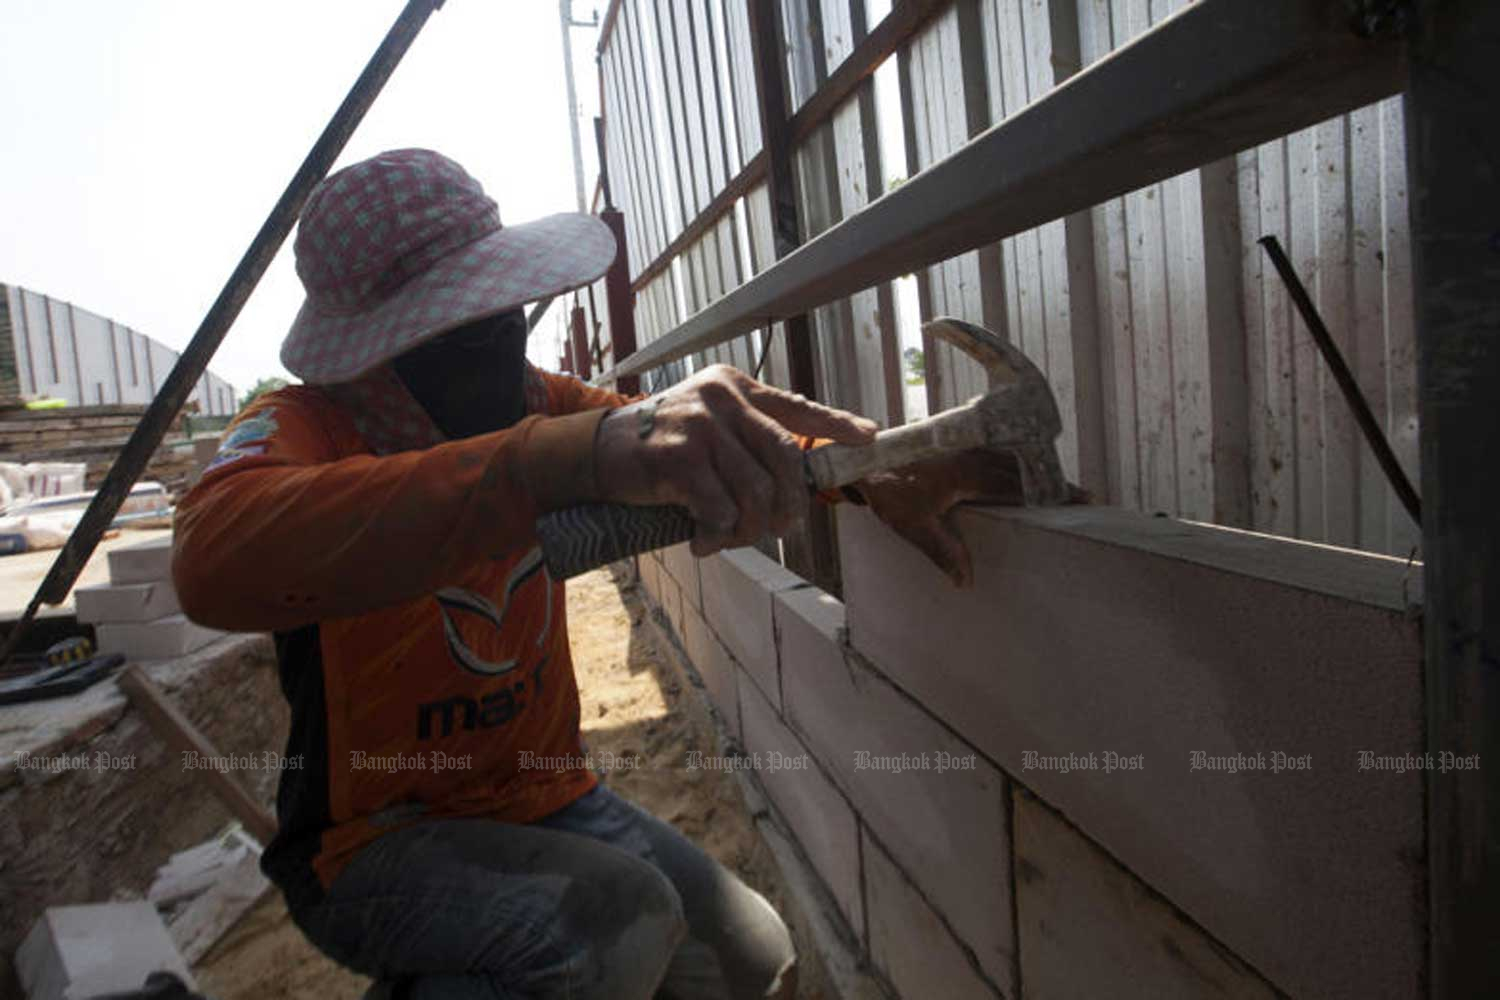 A labourer works at a construction site in Bangkok. The Board of Trade of Thailand said on Friday most employers opposed the government policy's to raise the minimum daily way to at least 400 baht, deeming it too costly. (File photo by Pawat Laopaisarntaksin)